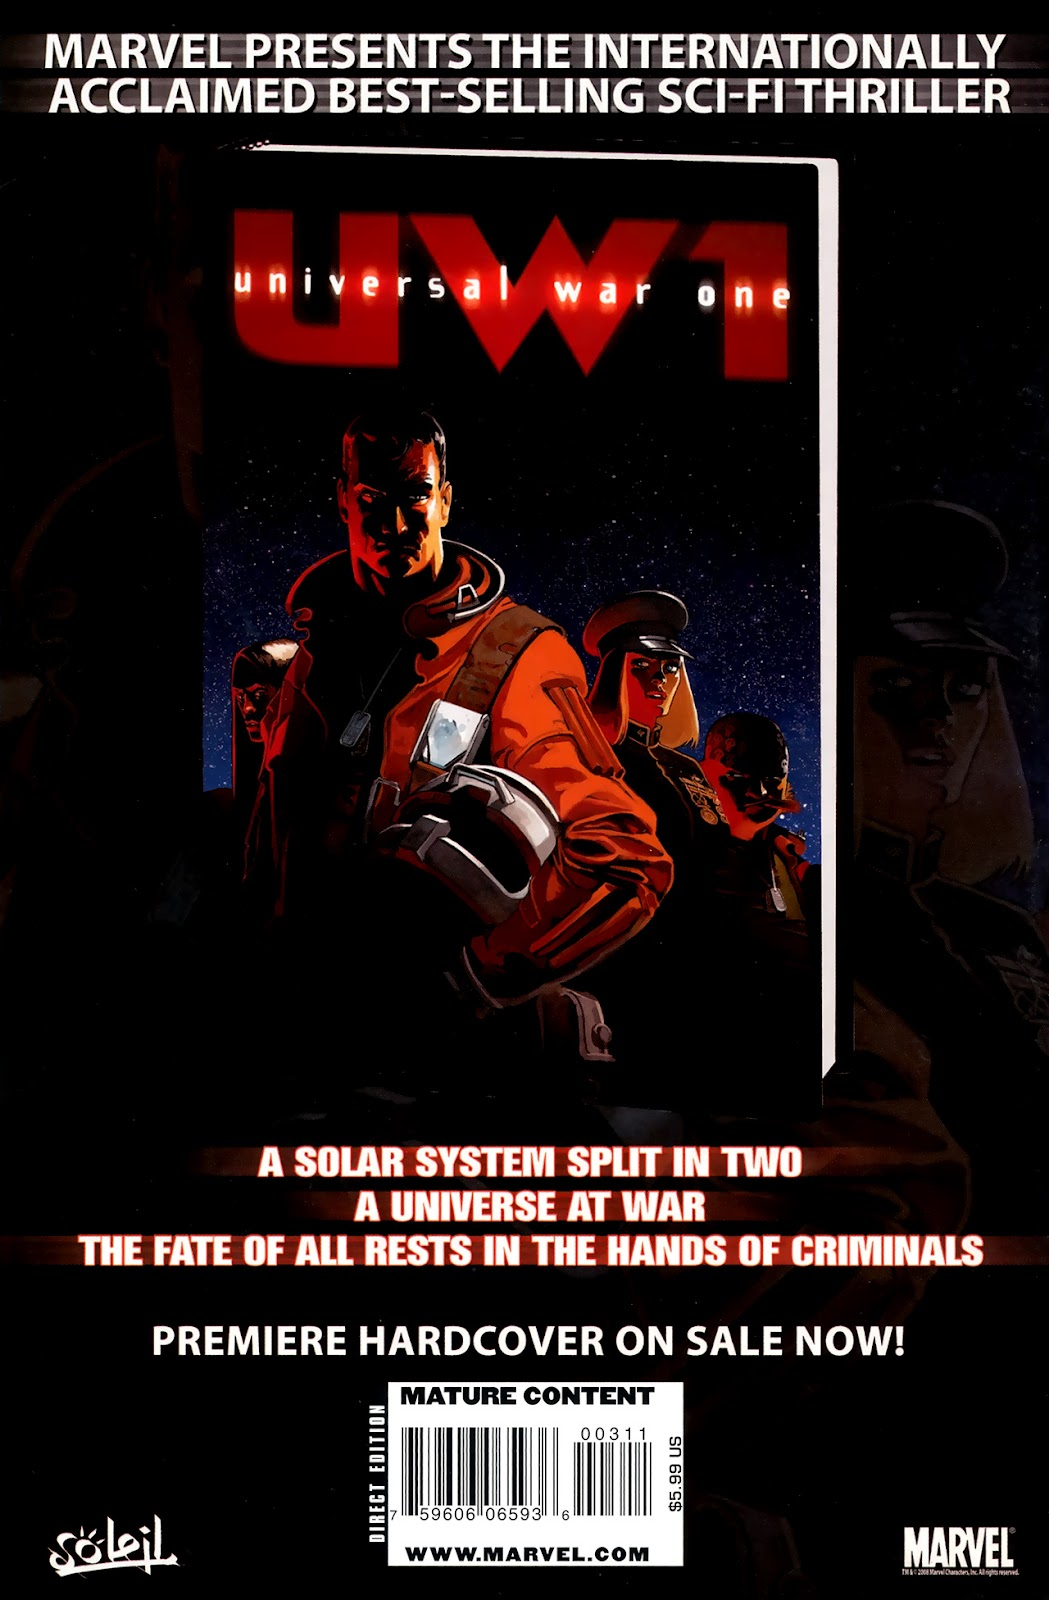 Read online Universal War One: Revelations comic -  Issue #3 - 52